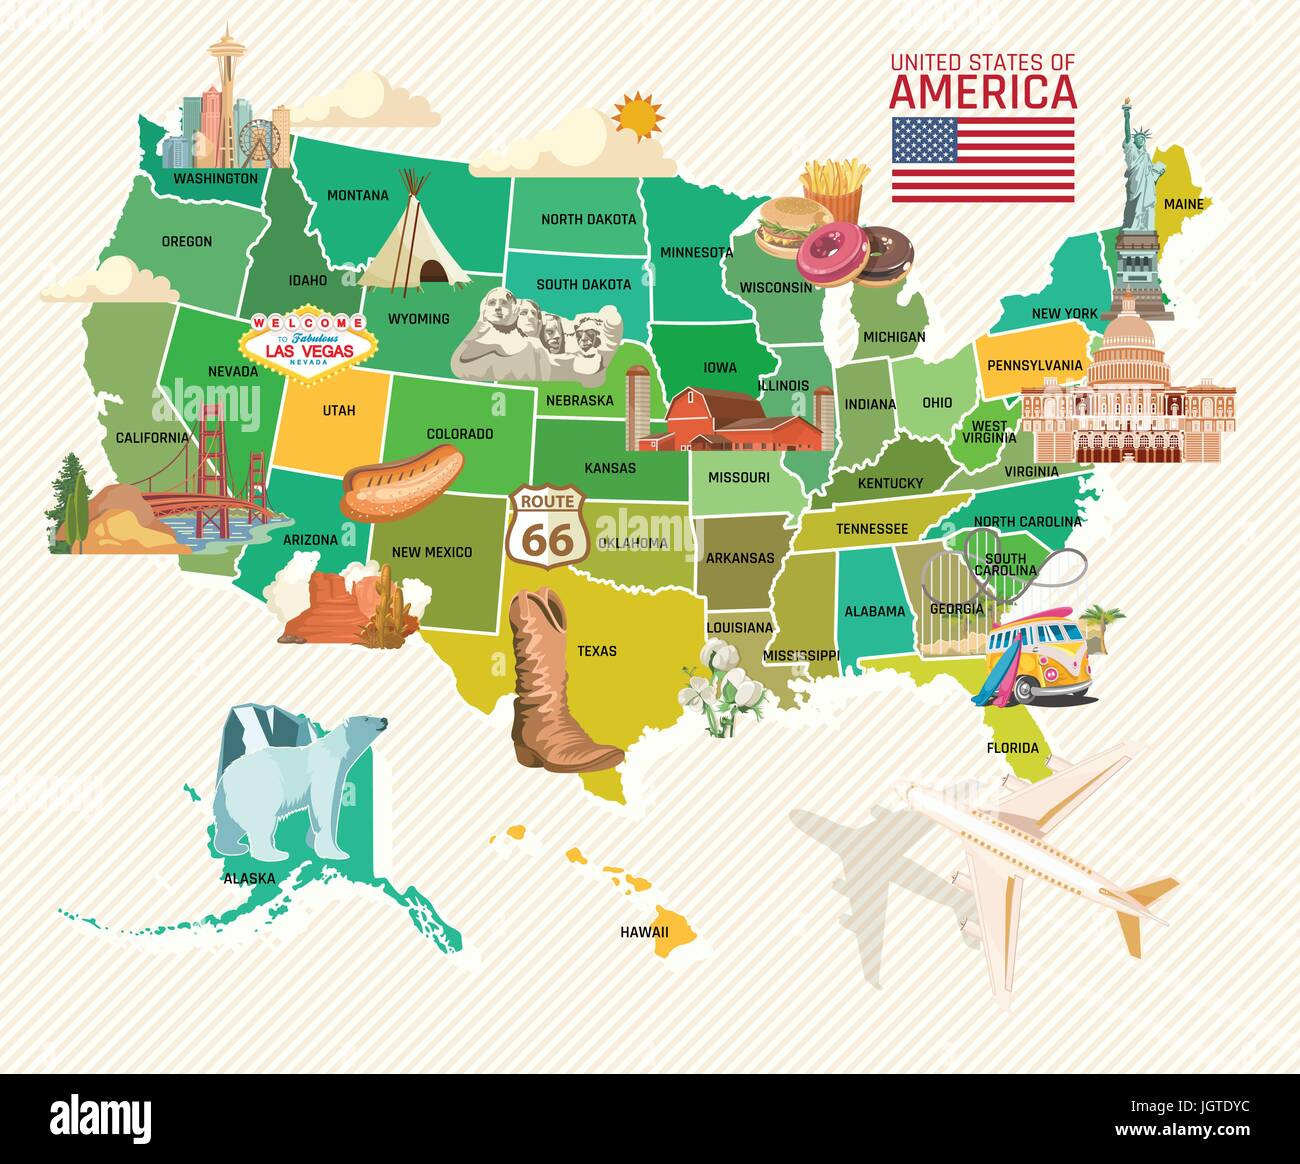 united states of america land of the There was a time when students attended civics classes in the united states and learned about the three branches of government, executive, legislative, and judicial.